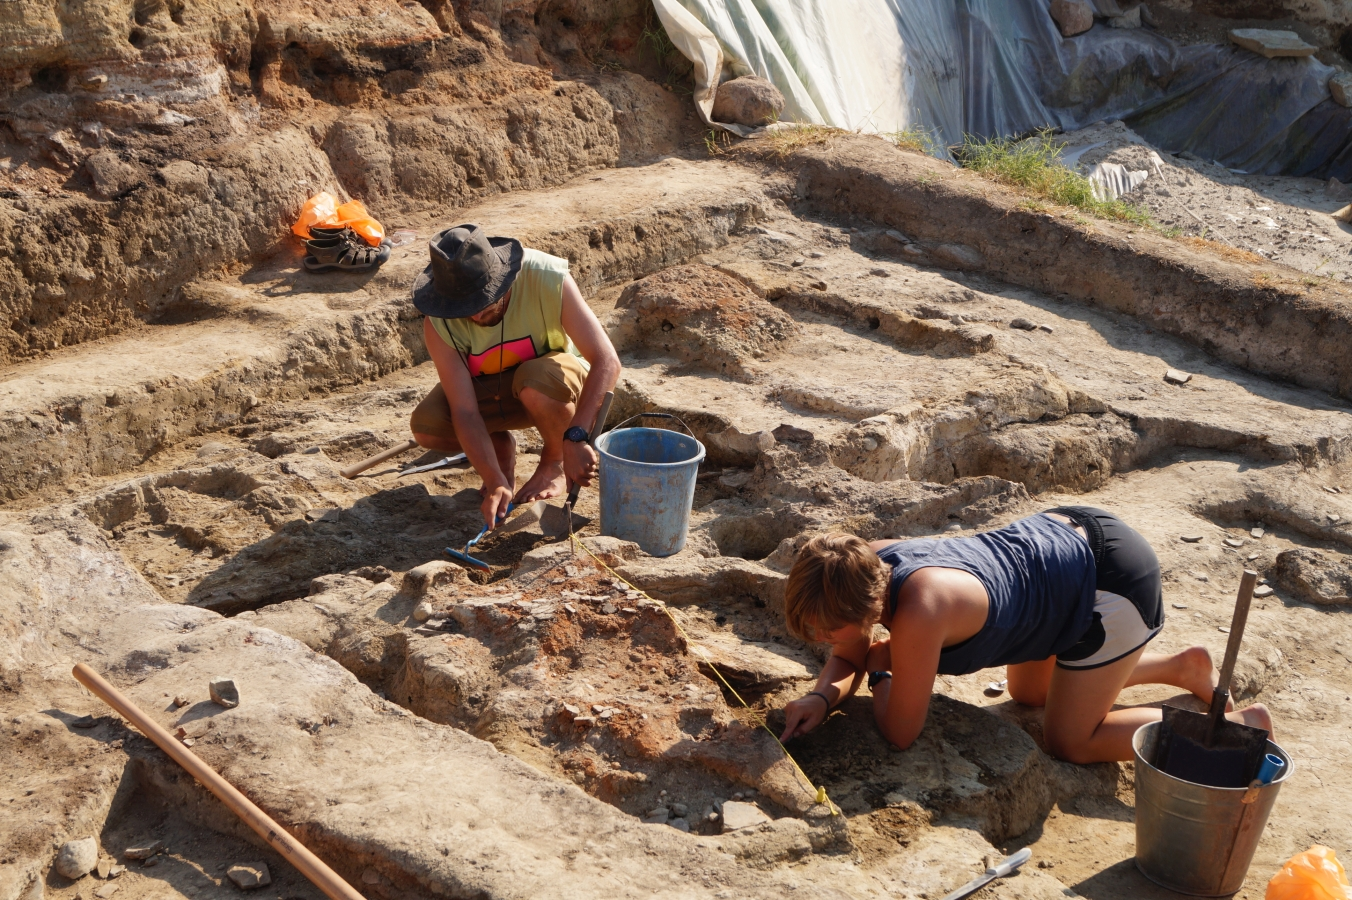 Archaeological excavation in progress.